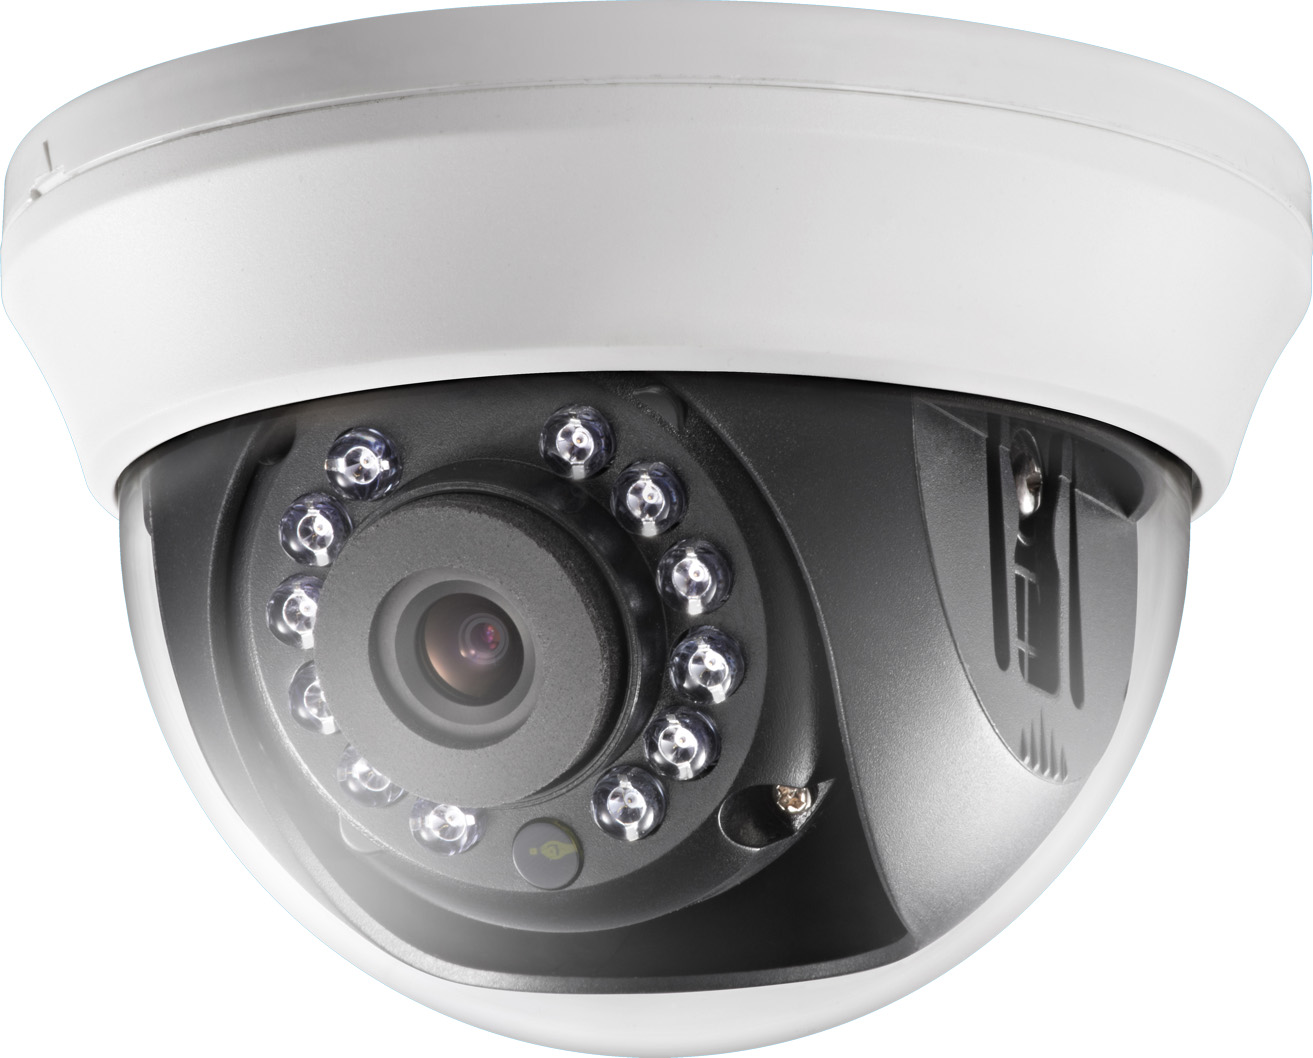 Hikvision DS-2CE56D0T-IRMMF 3.6mm